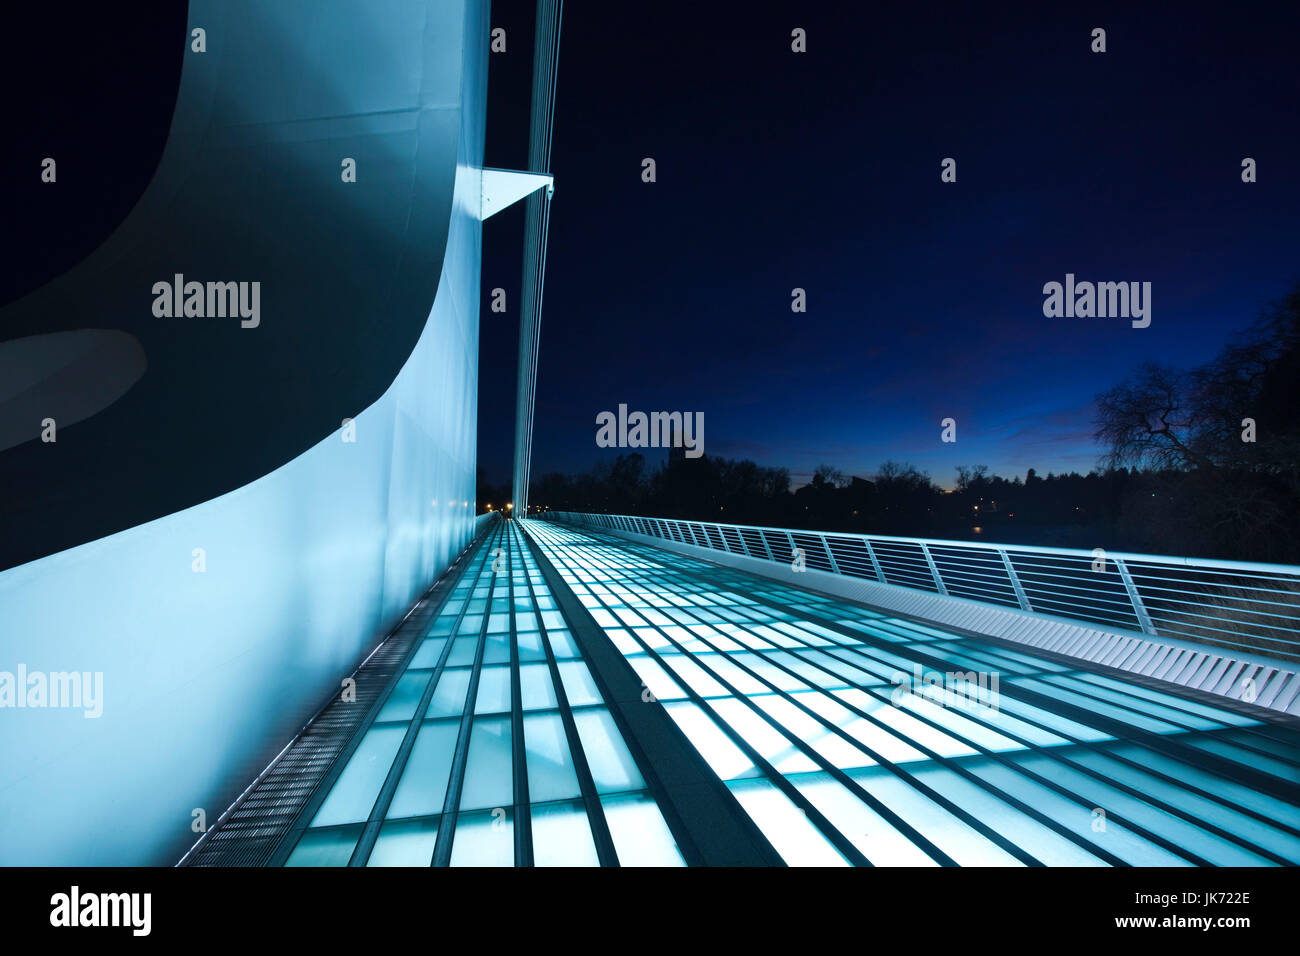 USA, California, Northern California, Northern Mountains, Redding, Turtle Bay Park, Sundial Bridge, Santiago Calatrava, - Stock Image